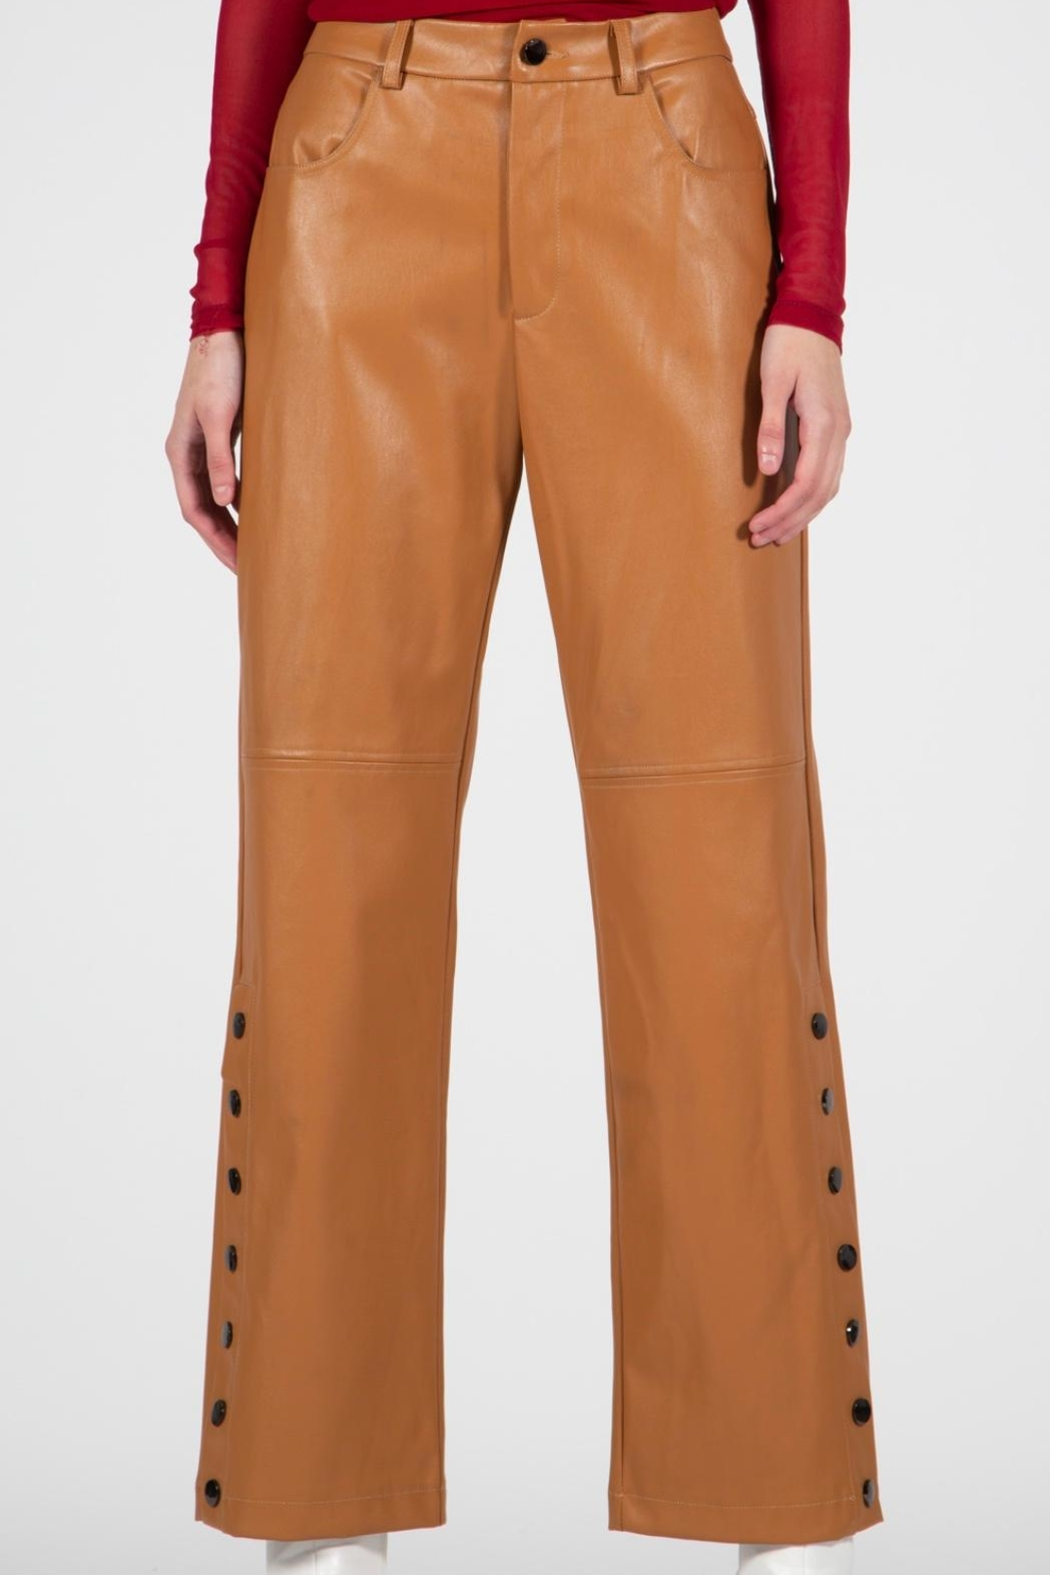 BEULAH STYLE Camel Leather Pants - Back Cropped Image